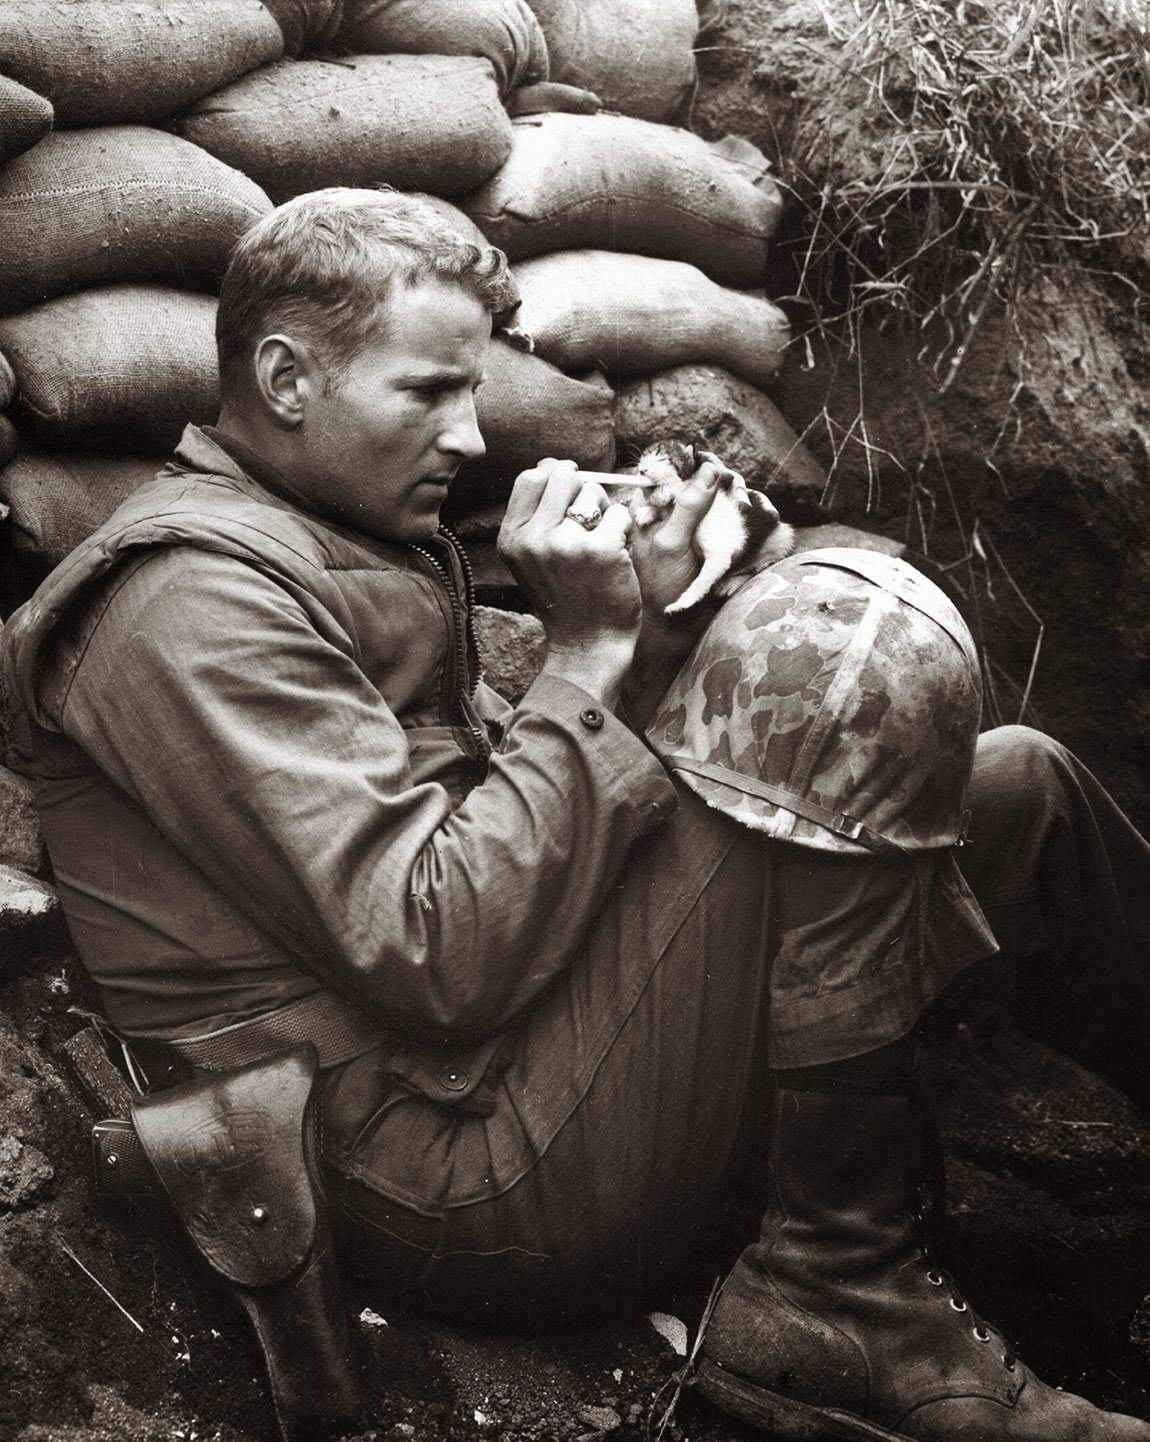 The marine and the kitten, Korean War, 1952 (1)